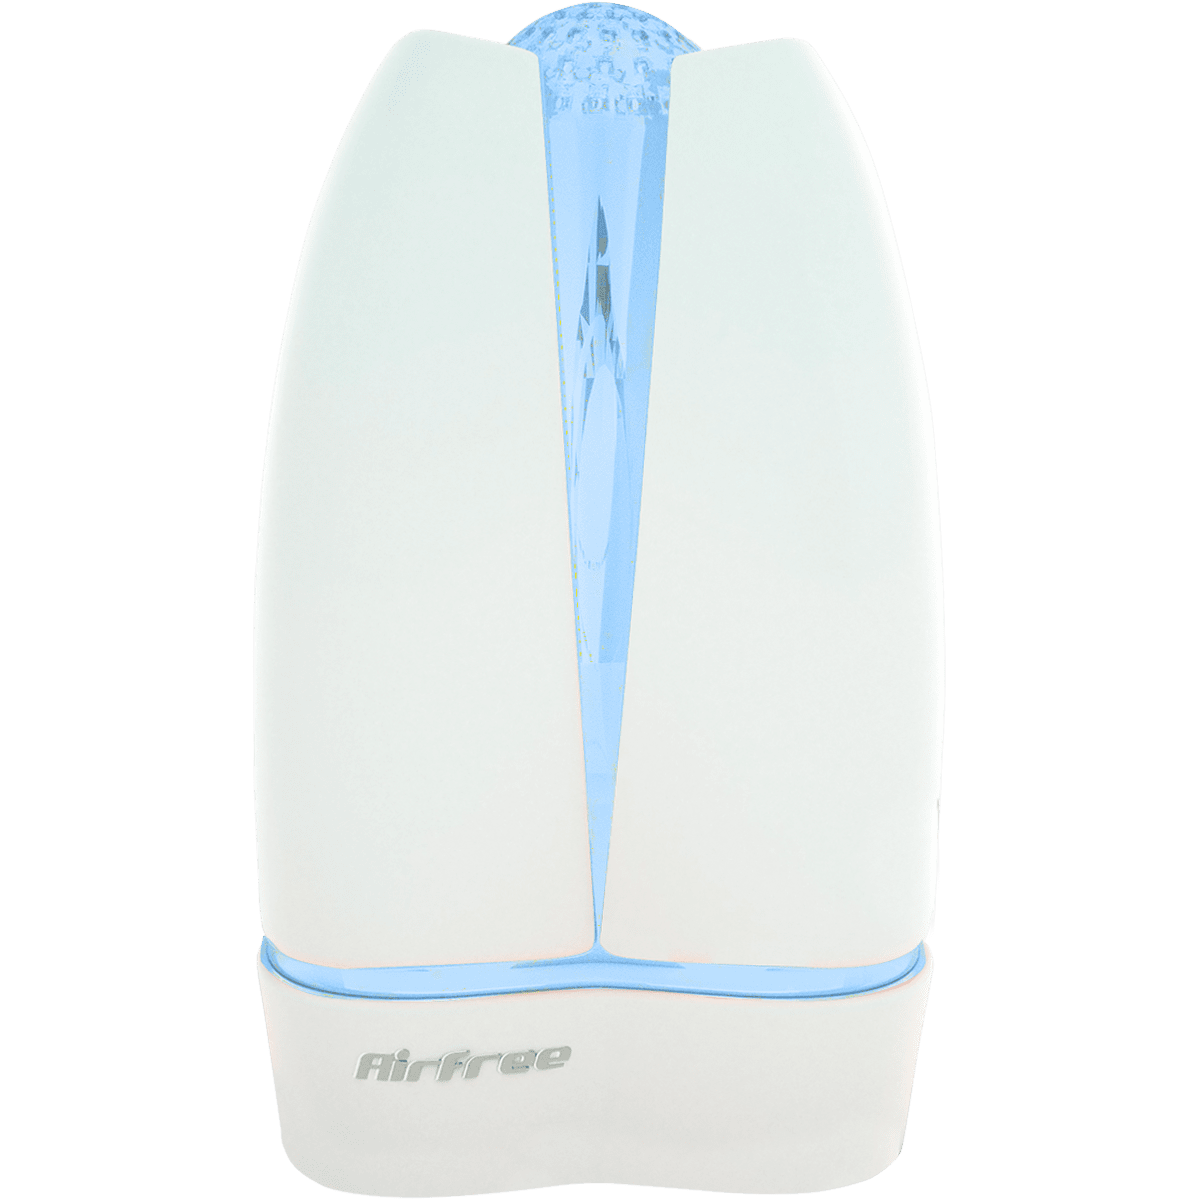 Airfree Lotus Filterless Air Purifier Sterilizer Sylvane